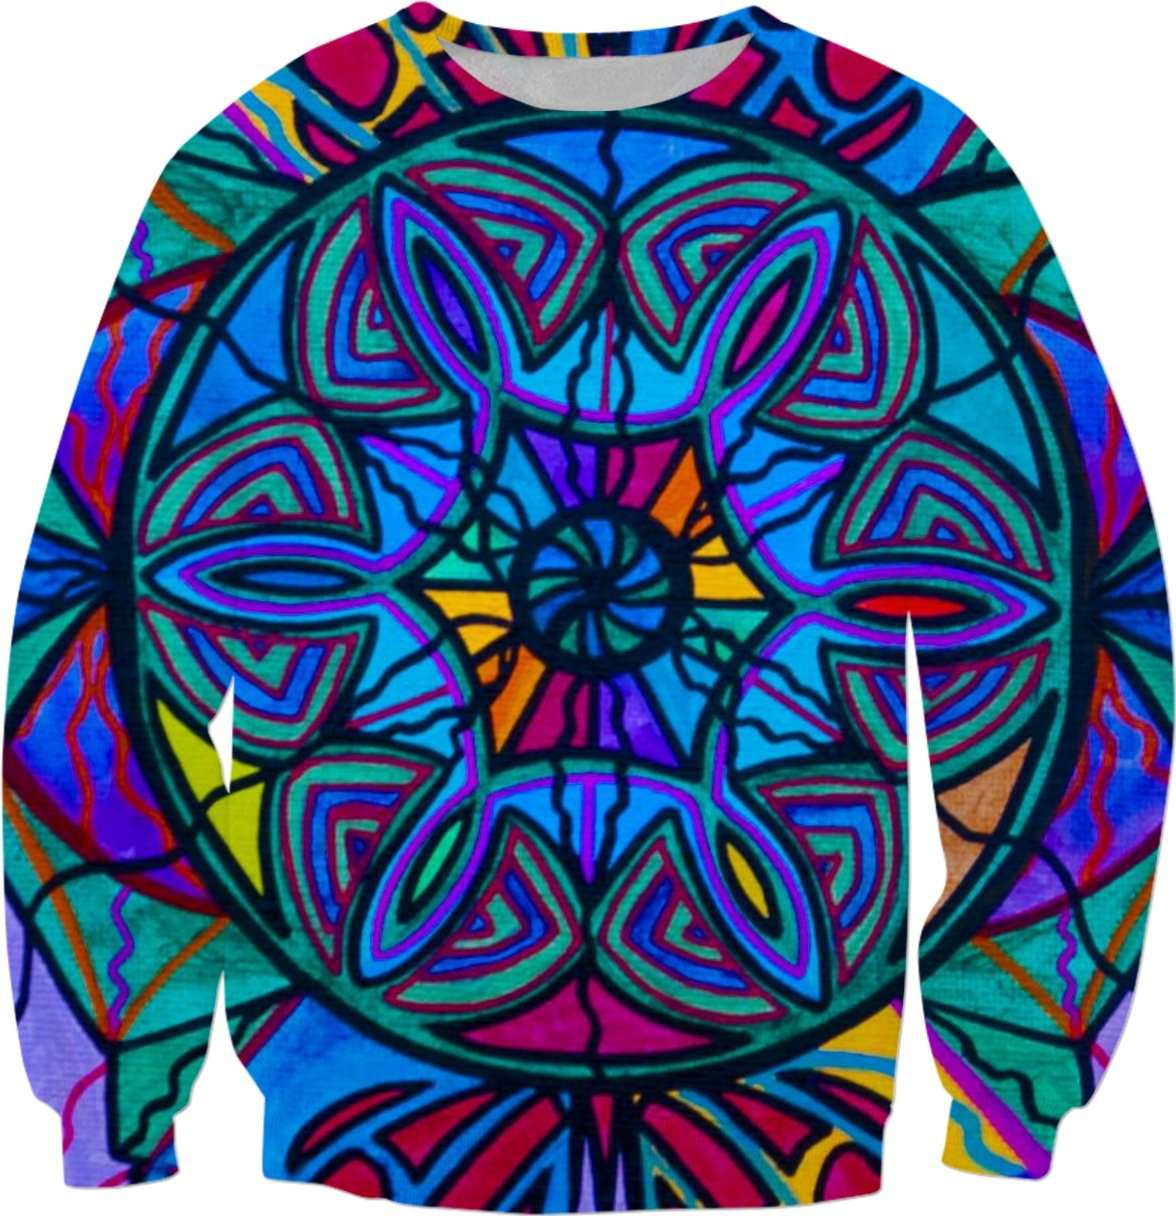 Poised Assurance - Sweatshirt